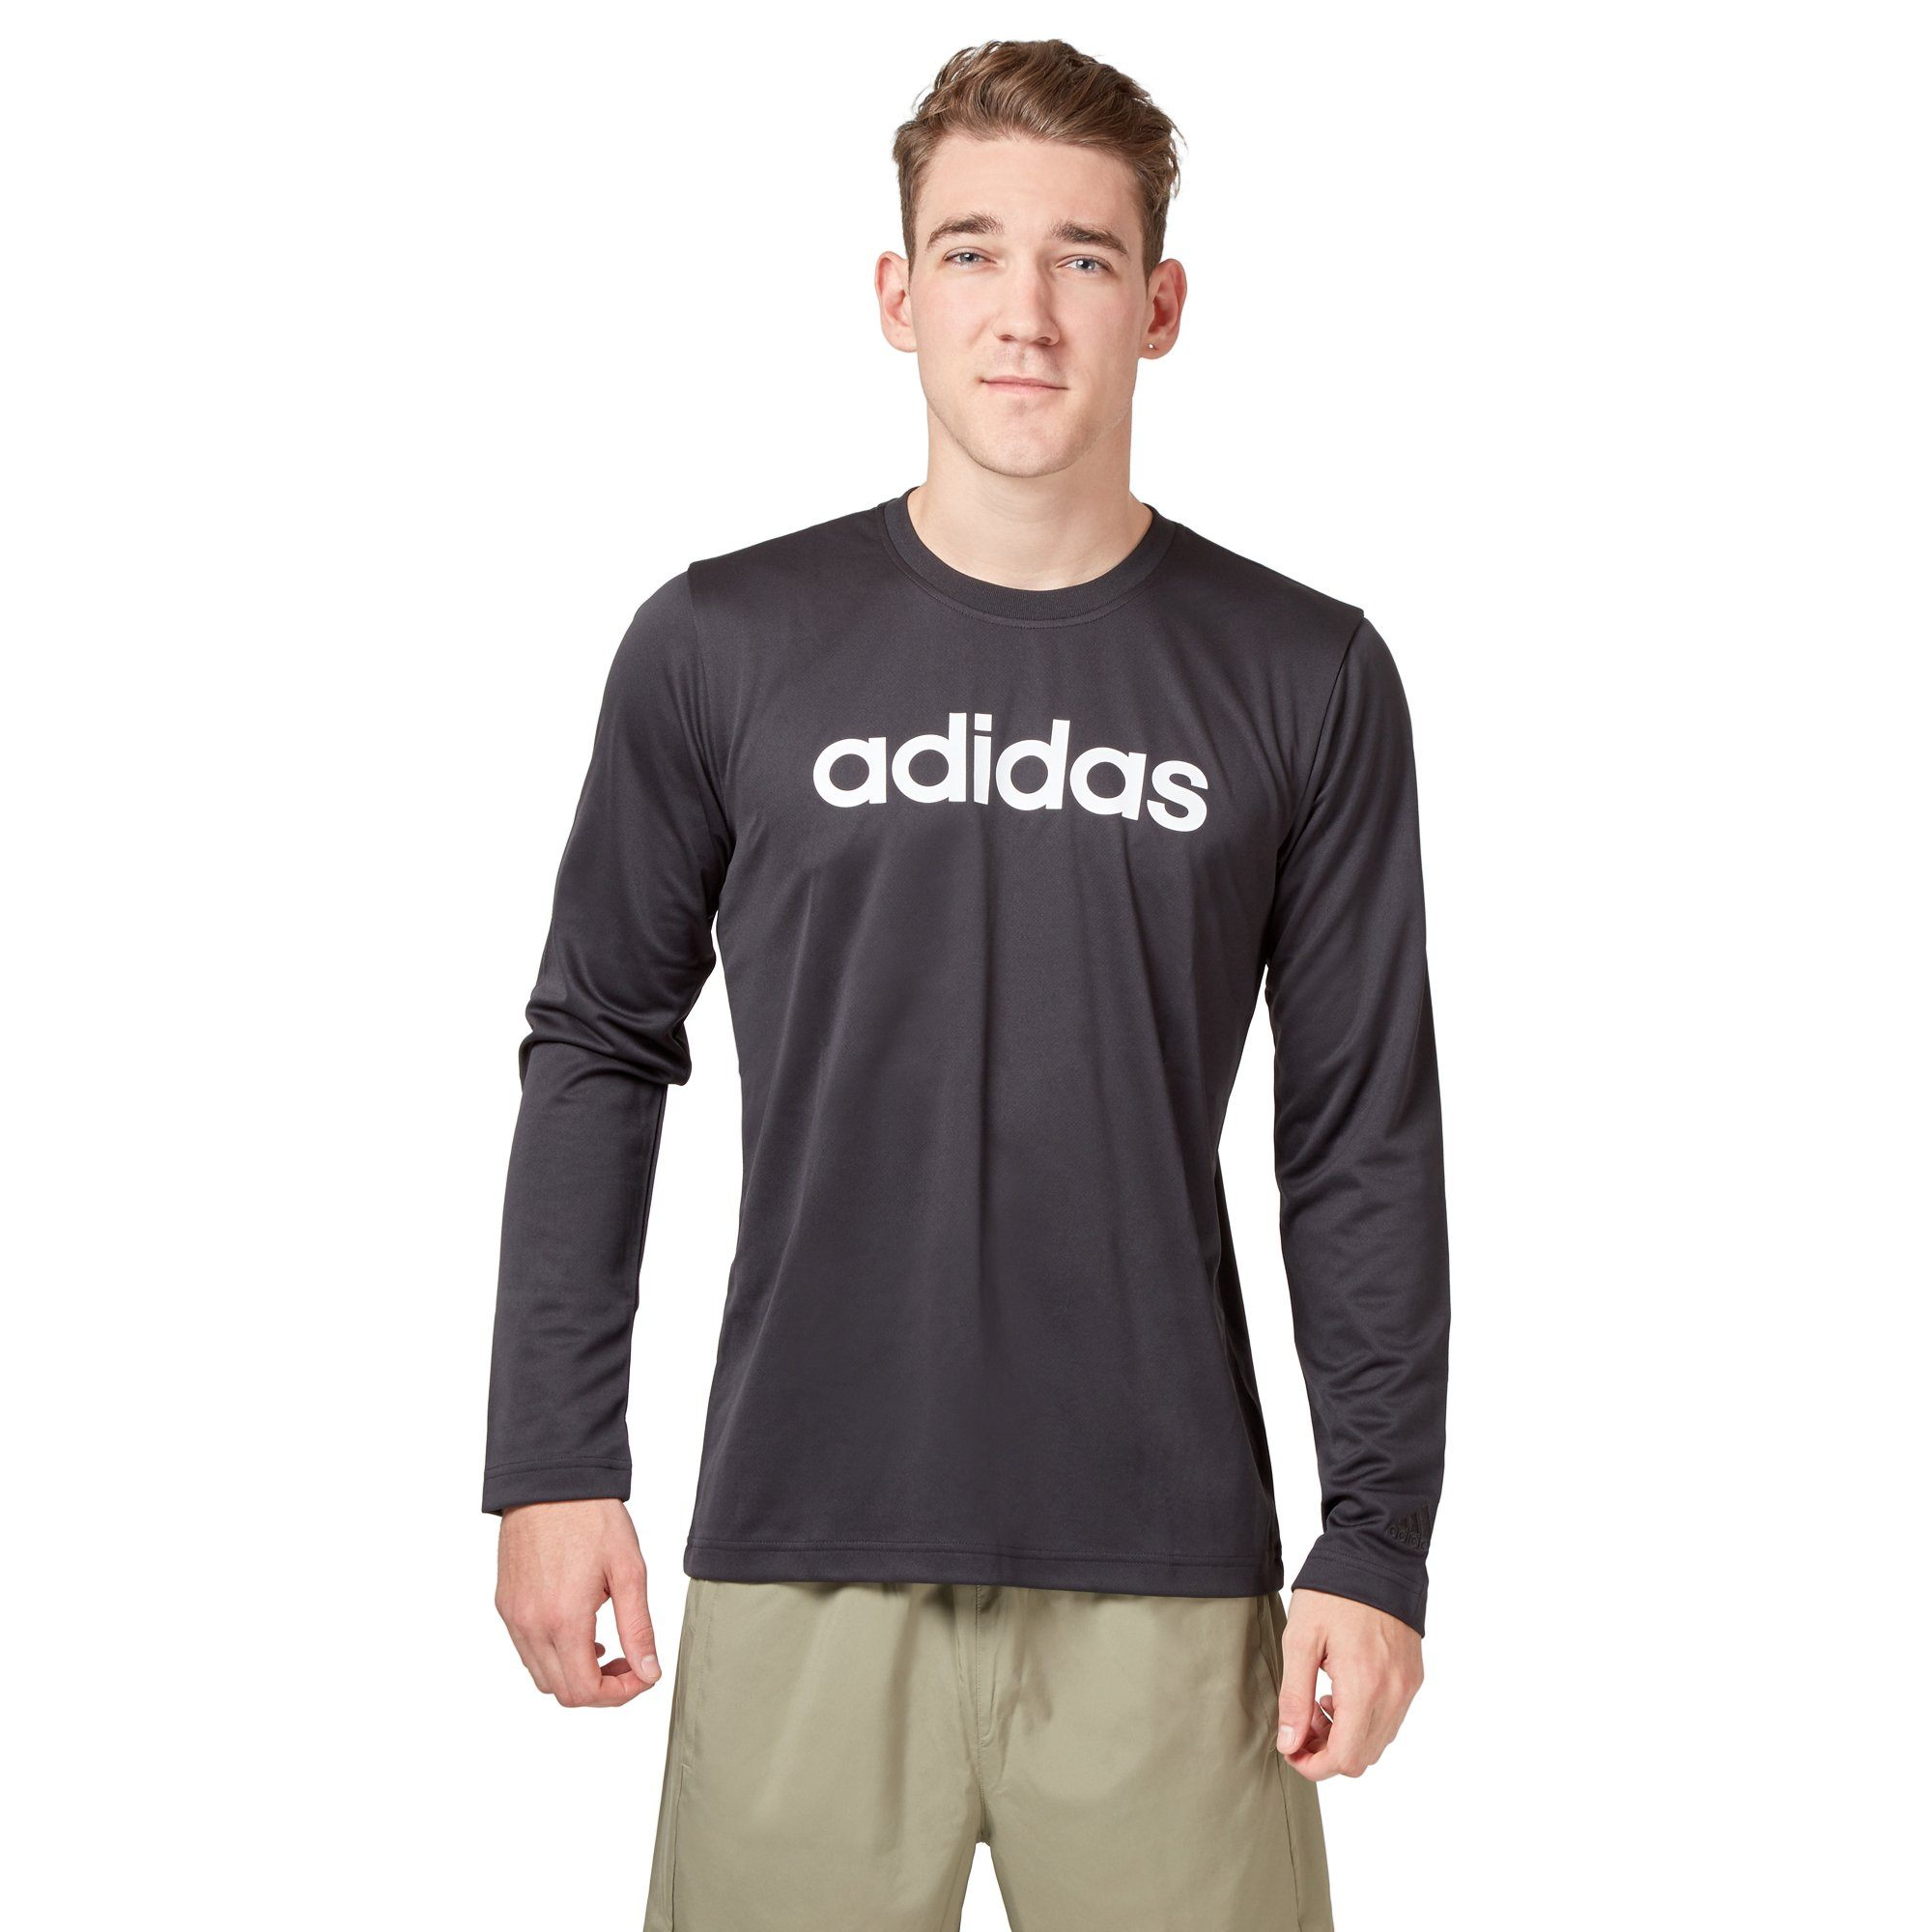 Adidas Men's Logo Long Sleeve Tee - Black SportsPower Geelong